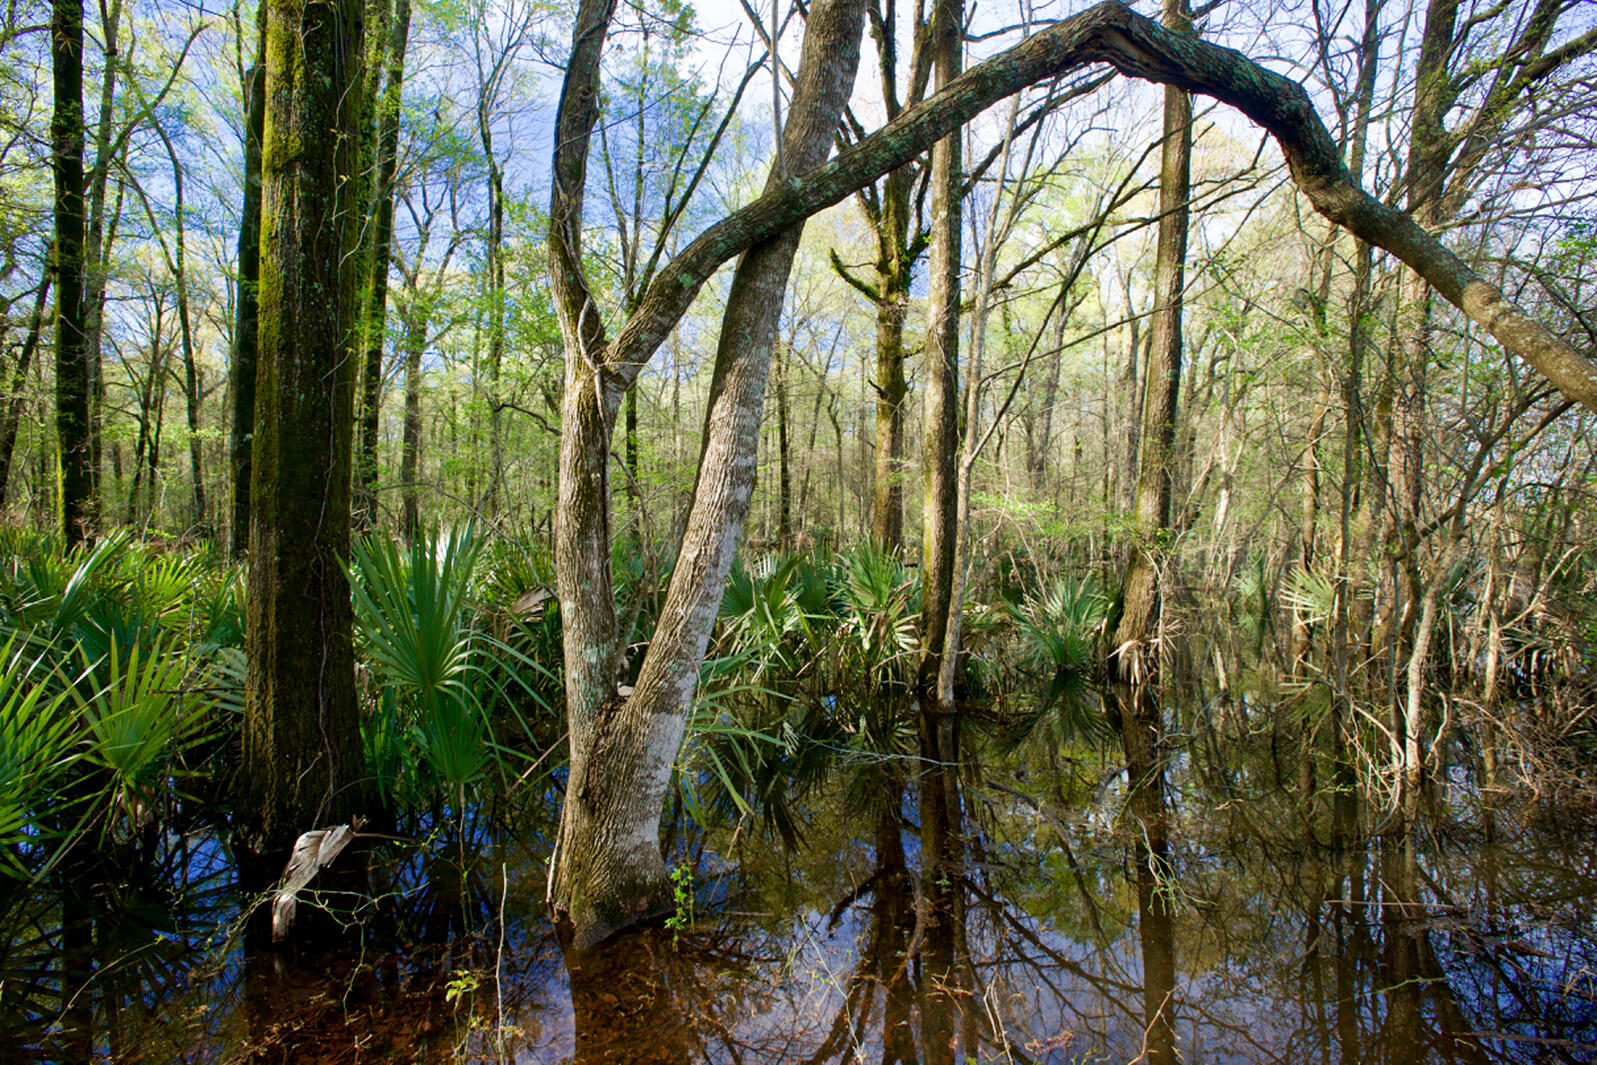 Wetlands in Panther Swamp National Wildlife Refuge are among those that the Yazoo Pumps project could damage. Stephen Kirkpatrick/Mississippi River Network